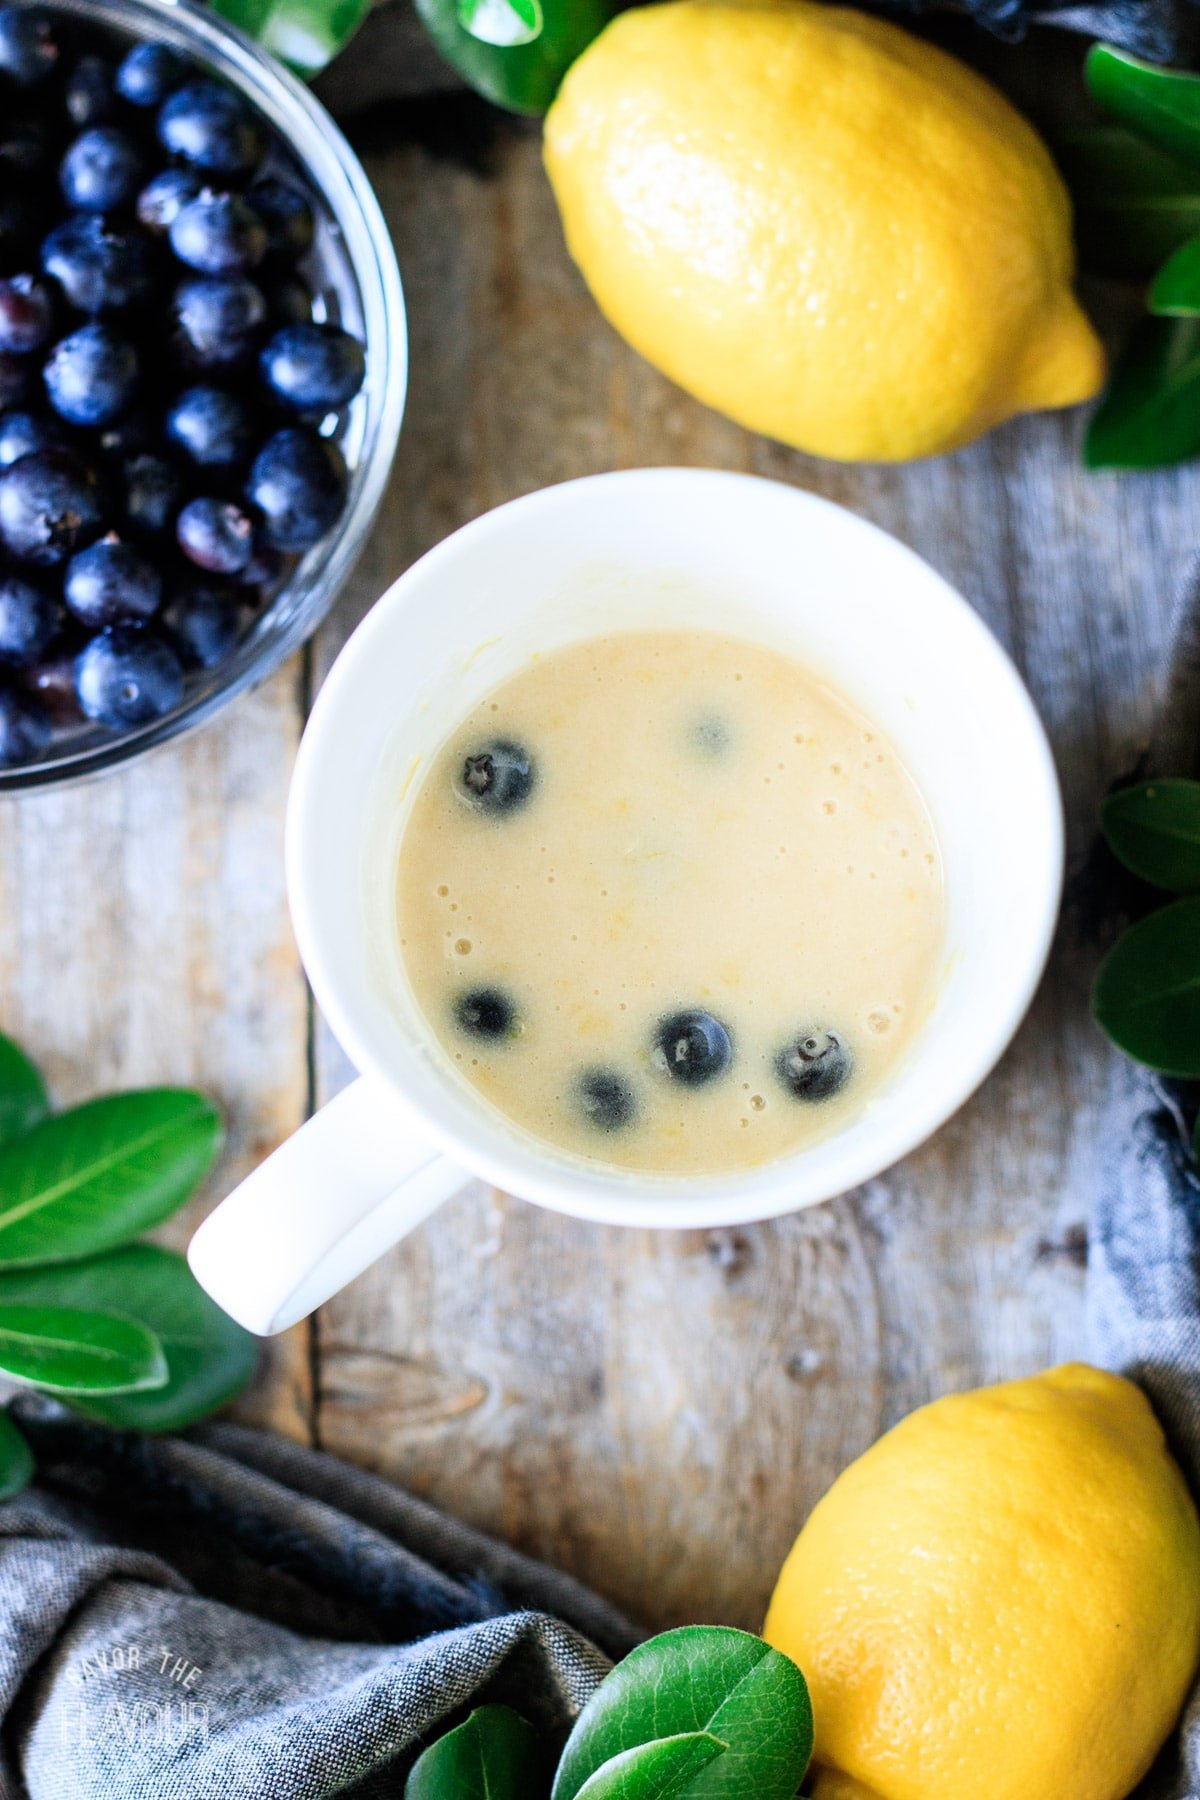 cake batter with lemon zest and blueberries mixed in